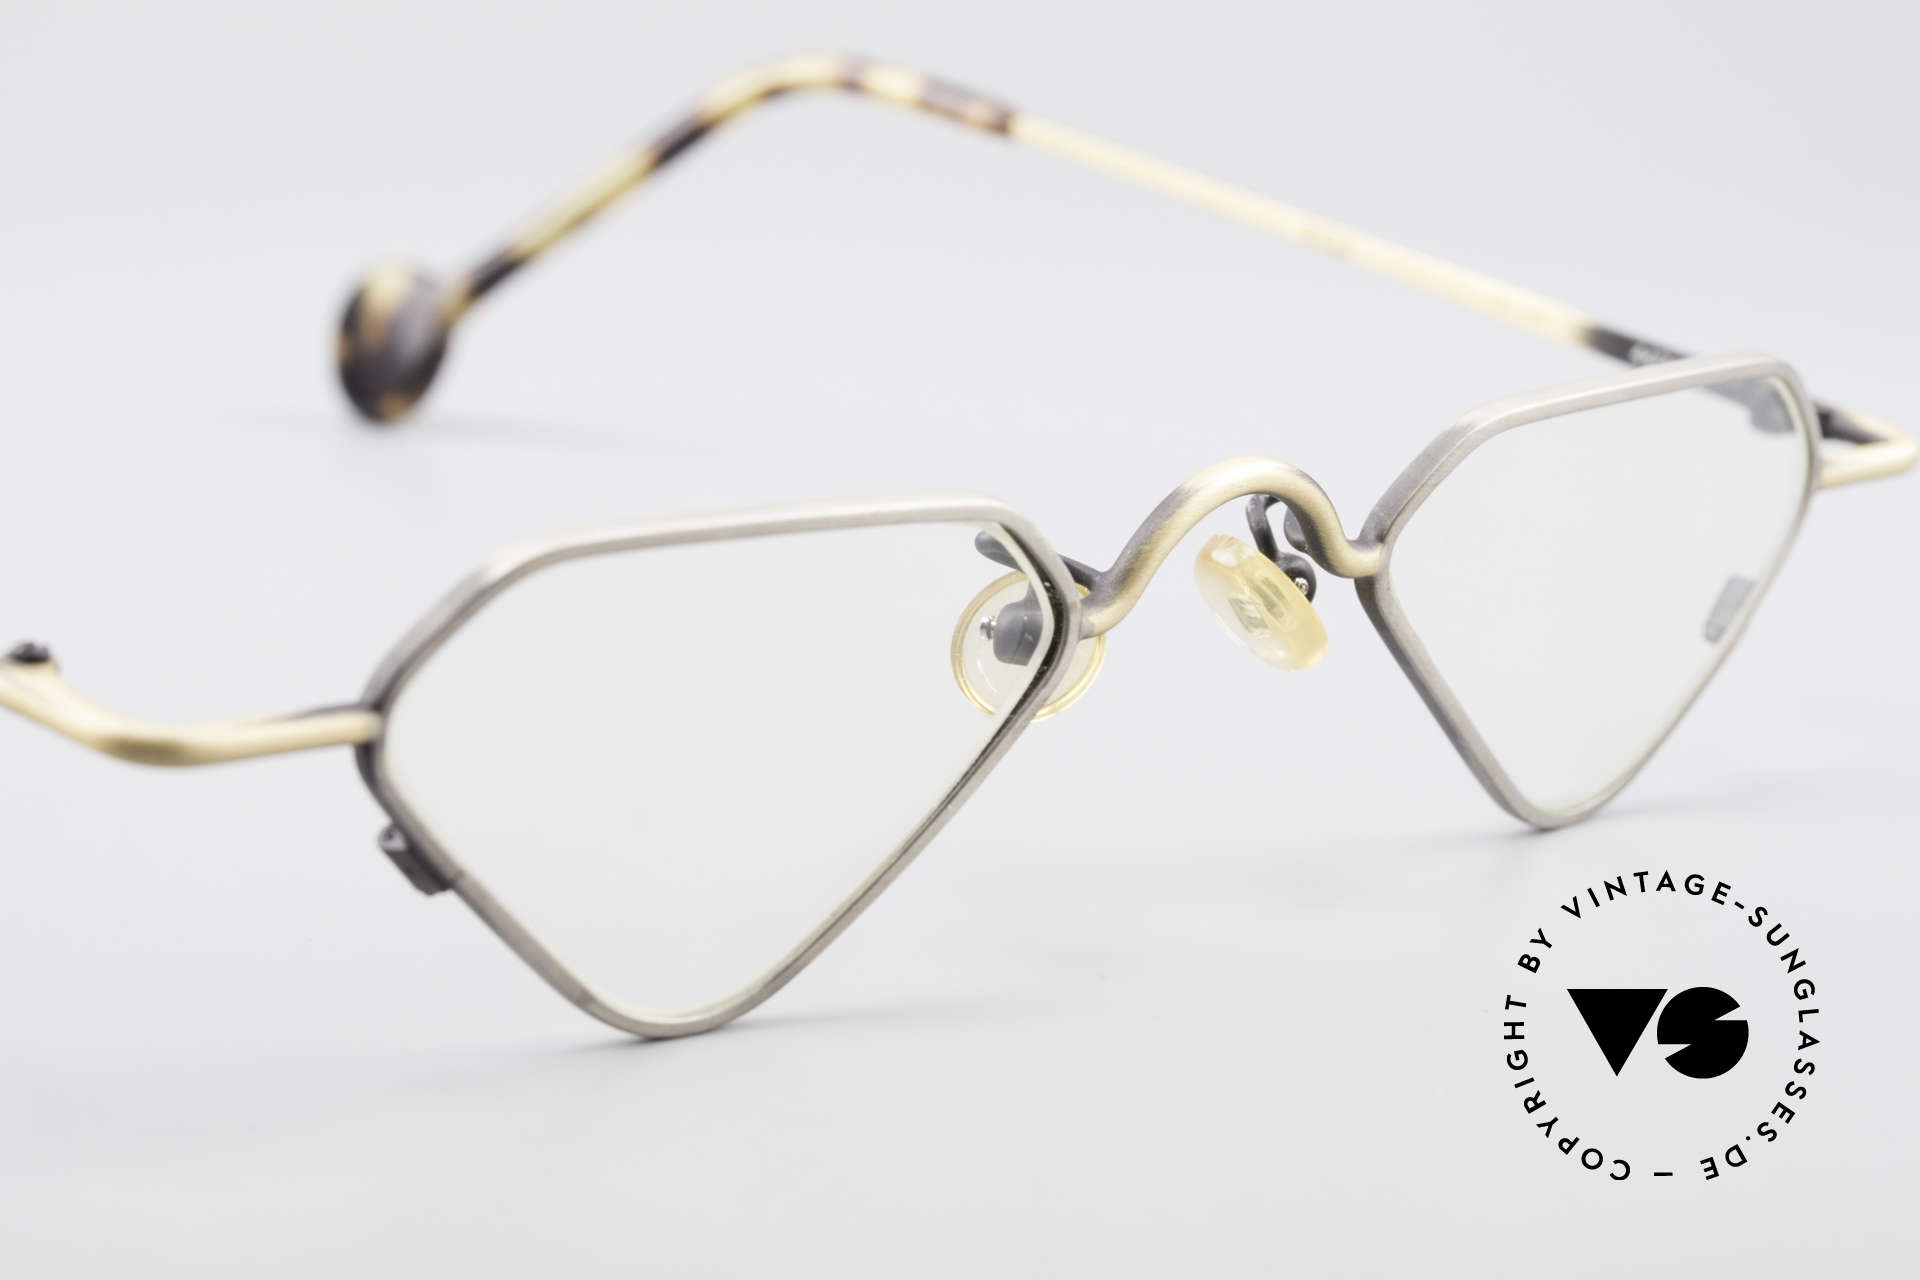 L.A. Eyeworks Millie 403 Extraordinary Reading Glasses, NO RETRO eyewear, but a beautiful old original (rarity), Made for Men and Women